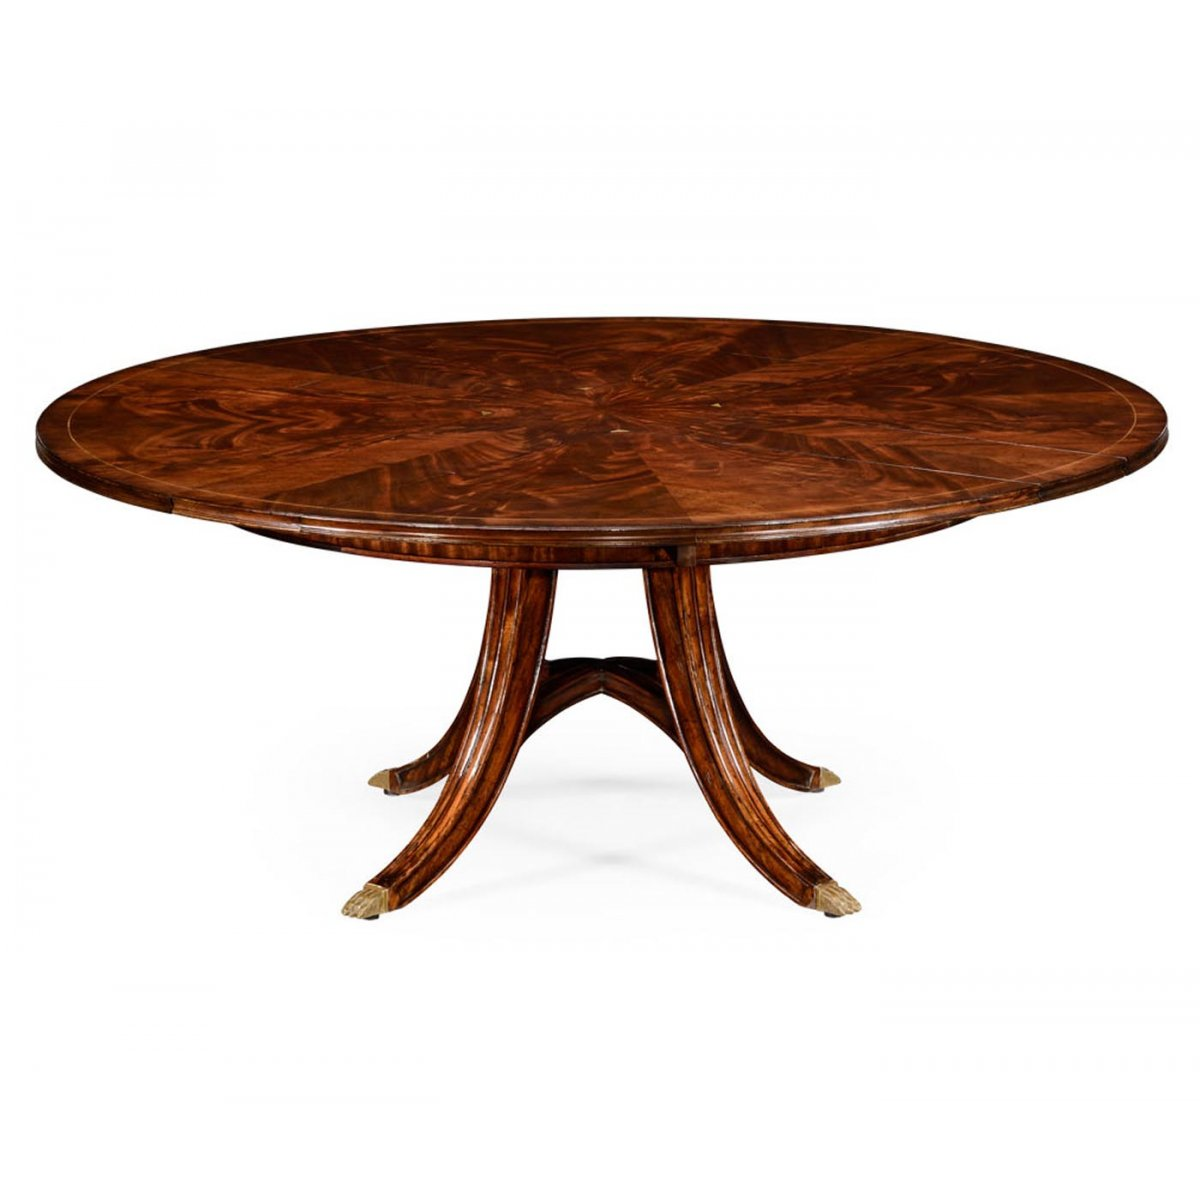 8 seater round dining table and chairs wicker swivel outdoor chair 10 extending swanky interiors